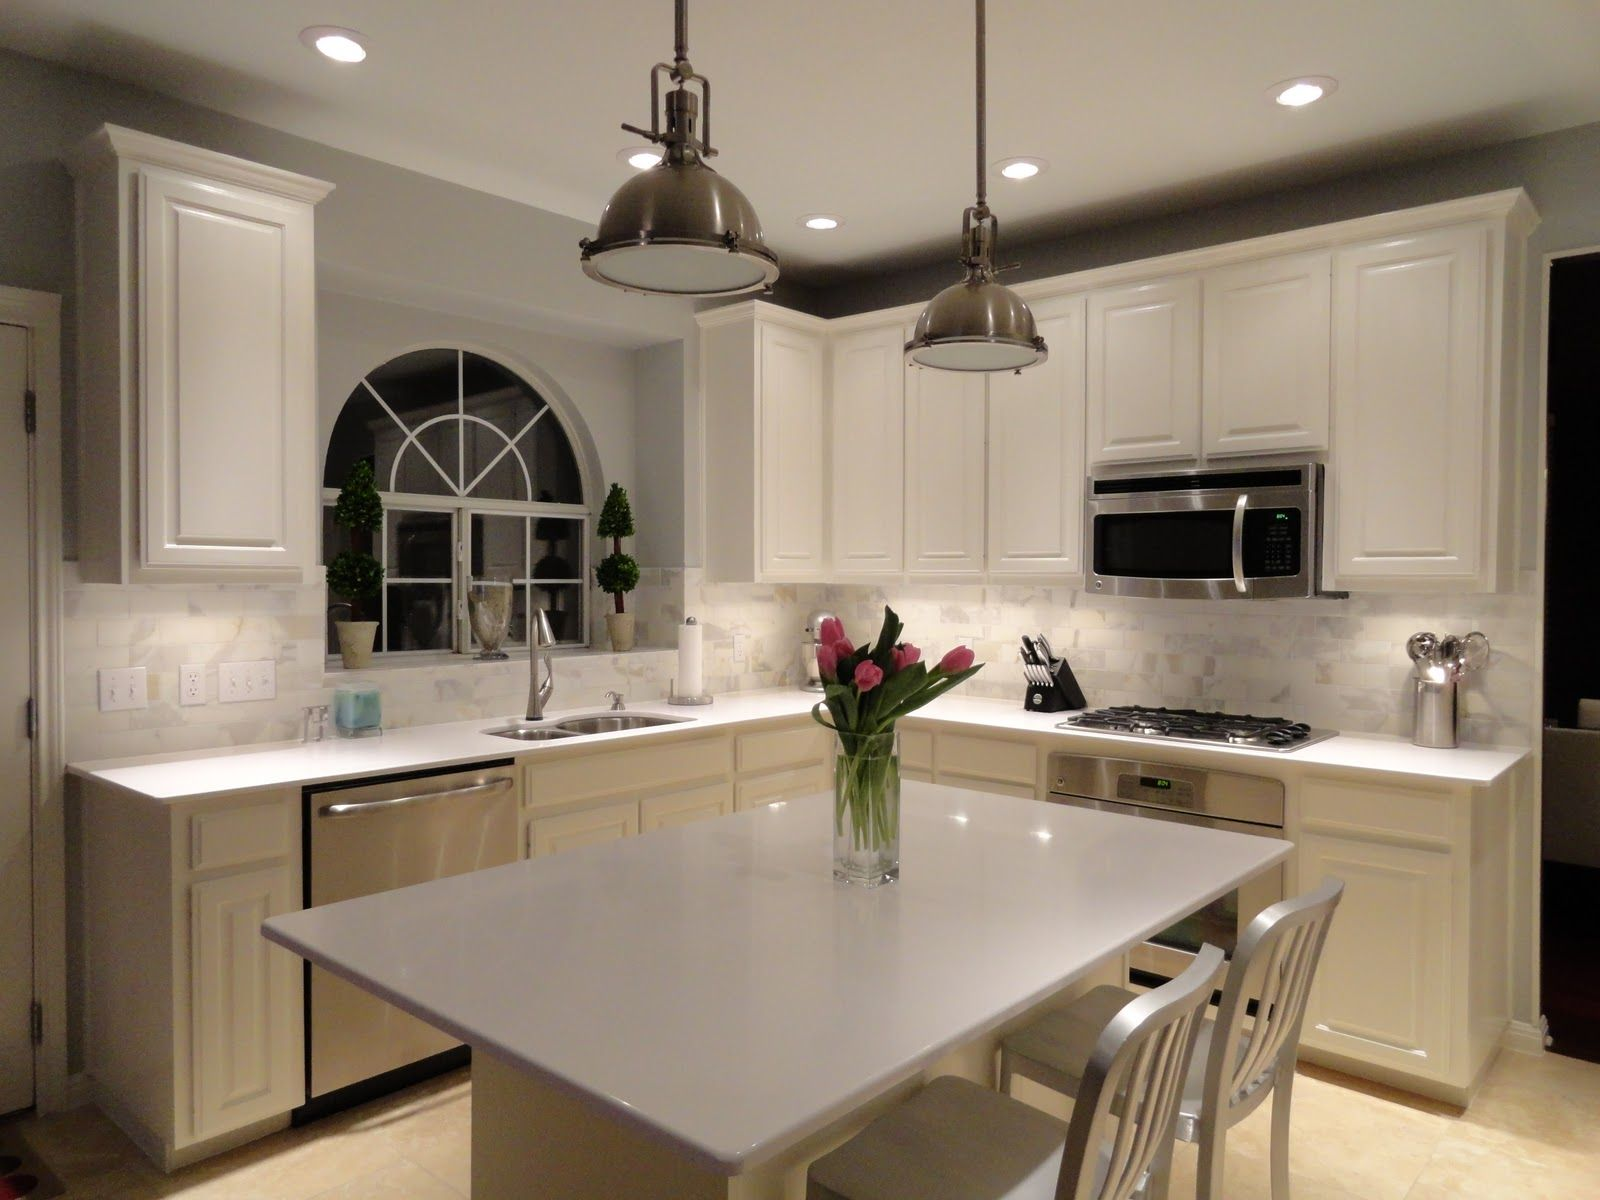 Cygnus Silestone On White Cabinets We Had The Cabinets Painted White And The Walls Painted A